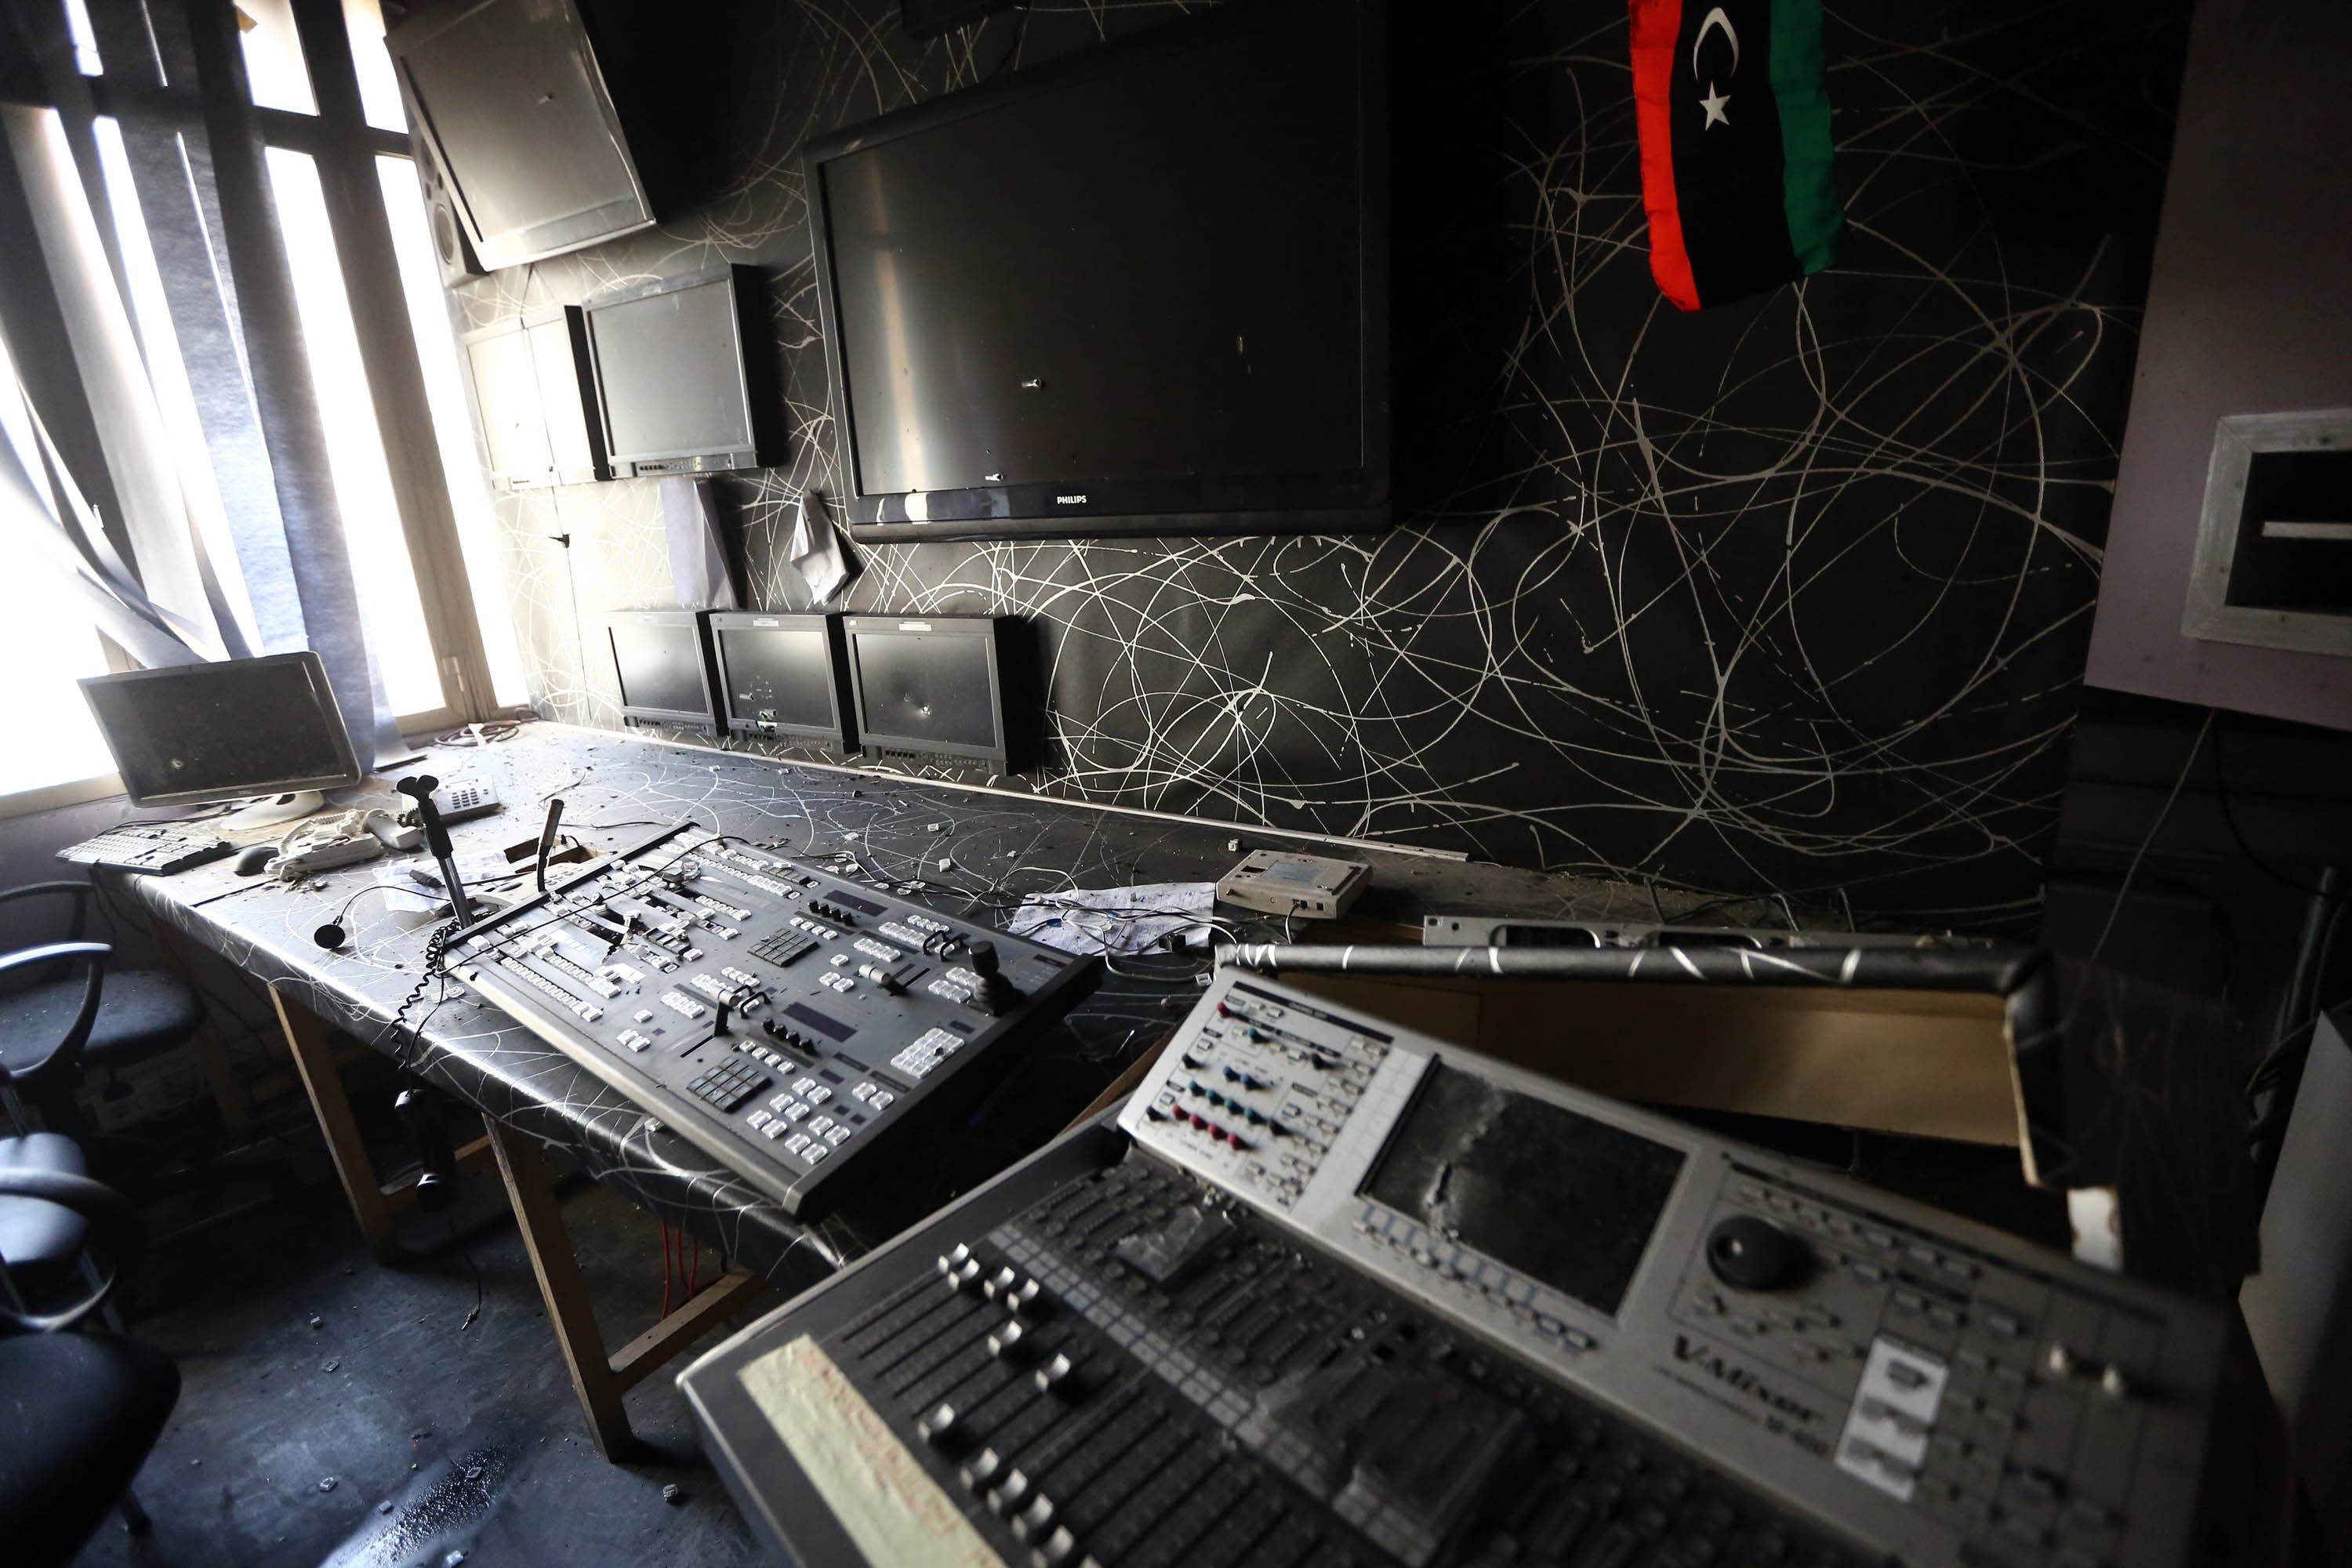 A damaged room pictured after the attack. (AFP)